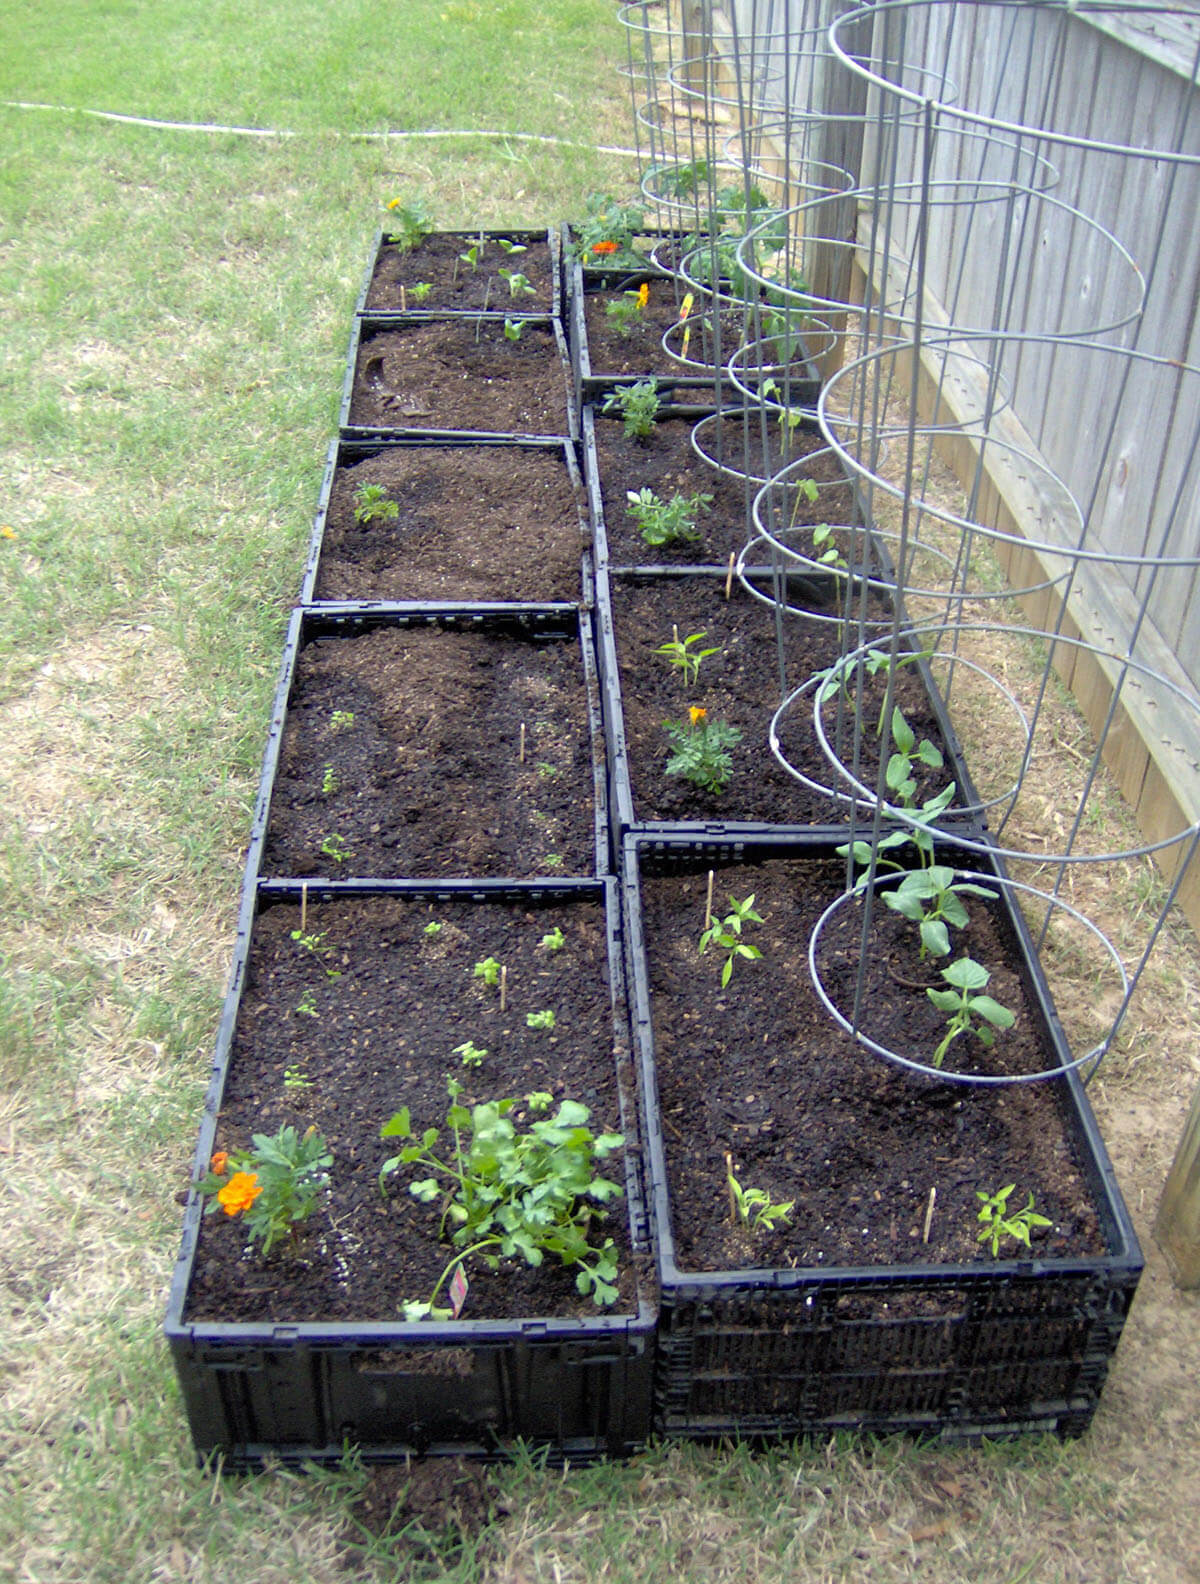 Space Saving Square Foot Garden with Crates